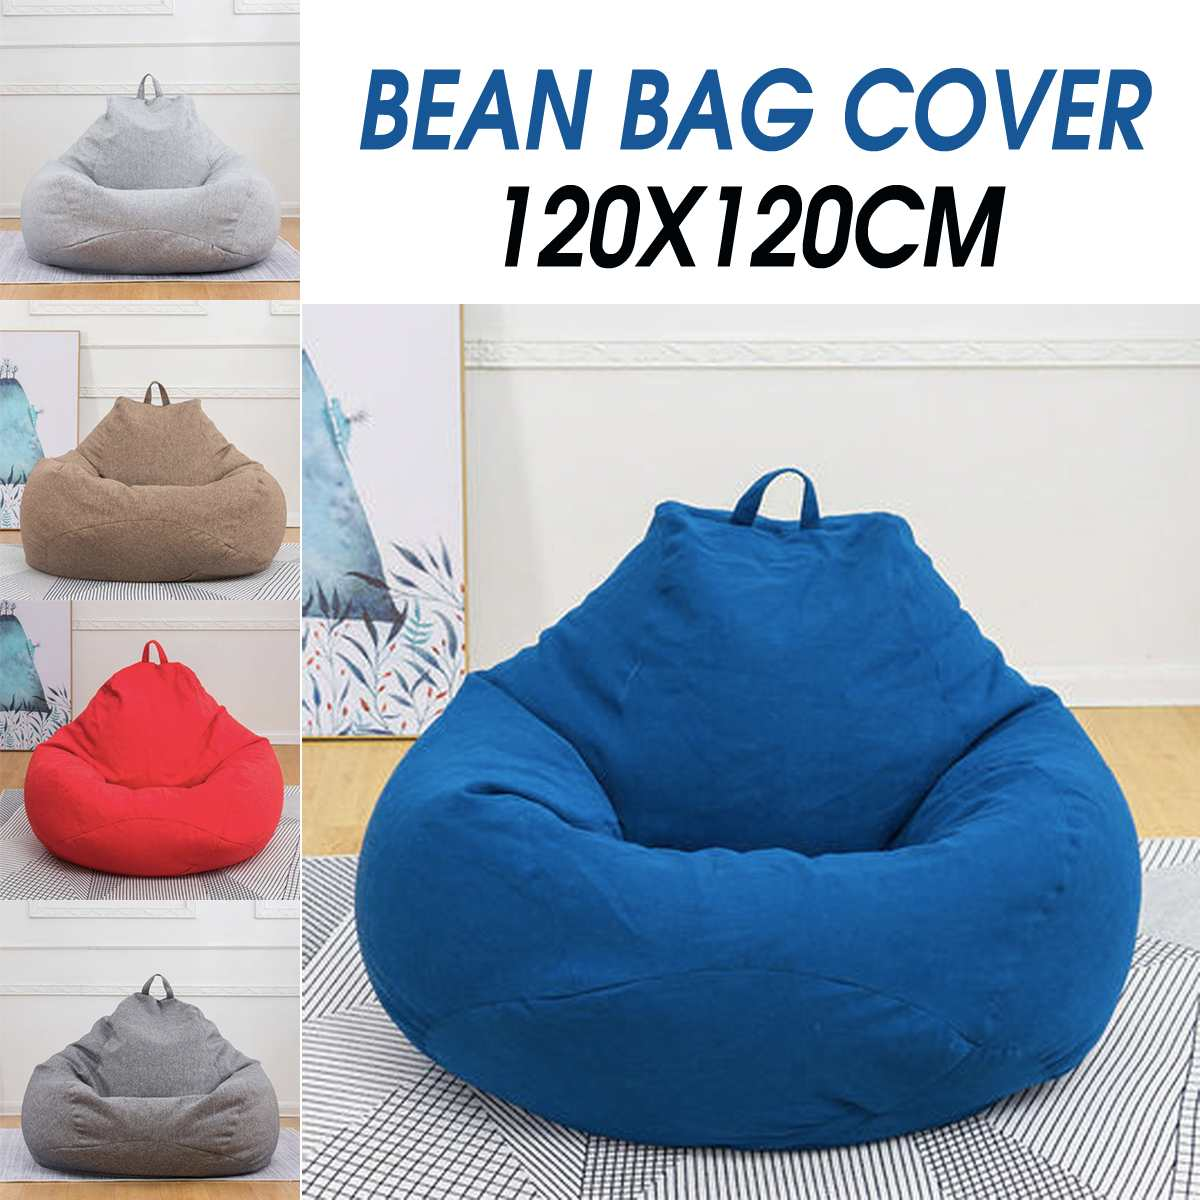 US $24.03 43% OFF|120cm Super Large Bean Bag Sofa Chair Cover Lounger  Ottoman Seat Living Room Furniture Beanbag Bed Pouf Puff Couch Lazy  Tatami-in ...